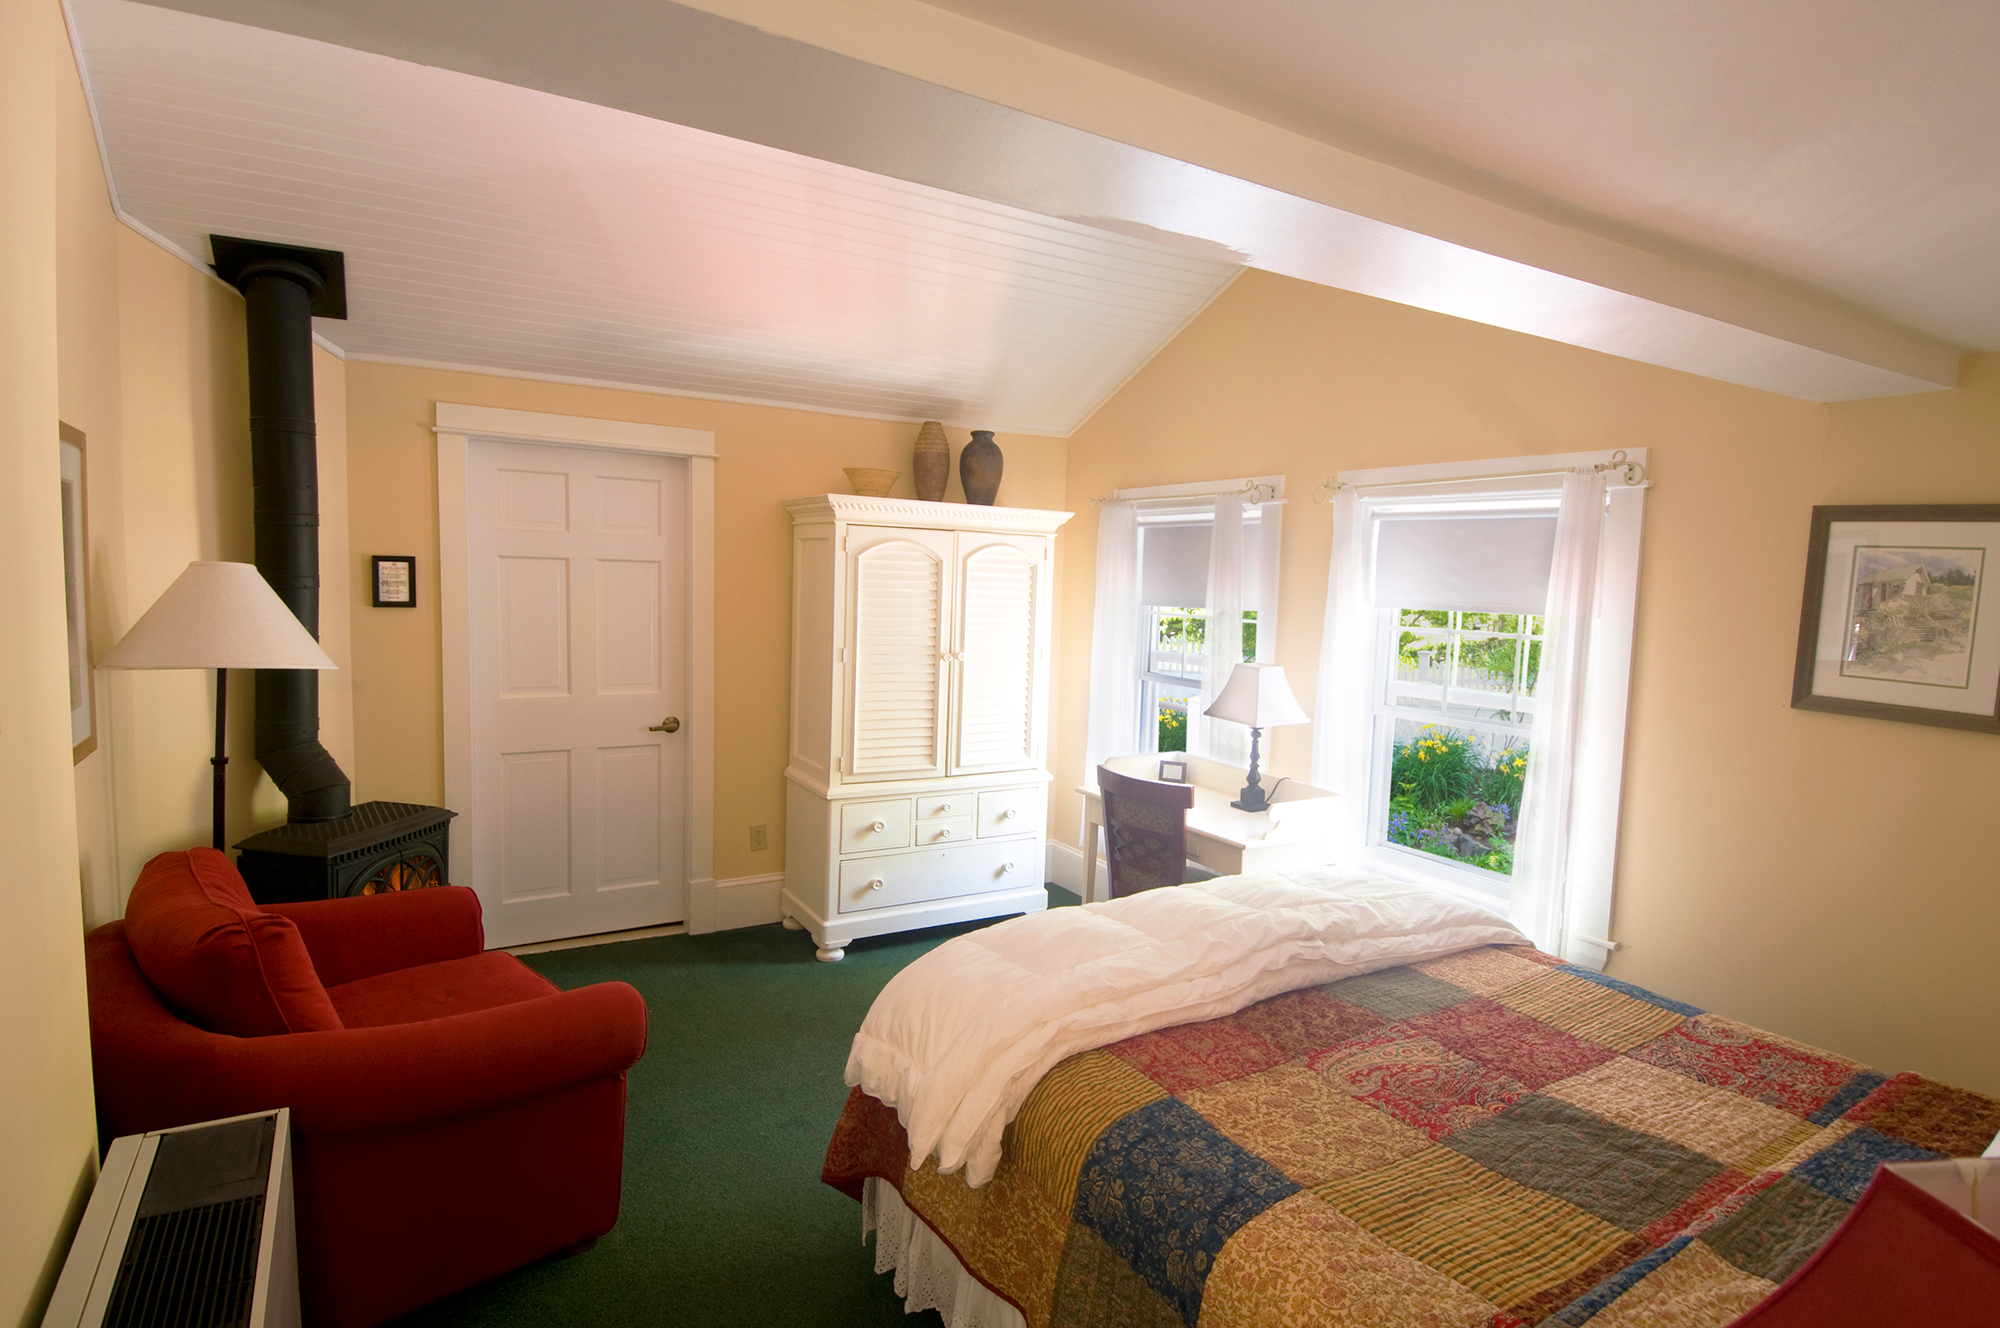 York Harbor Inn Maine Hotel And Bed Breakfast Network Topology Diagram Guesthouse Wifi Ocean View Lodging